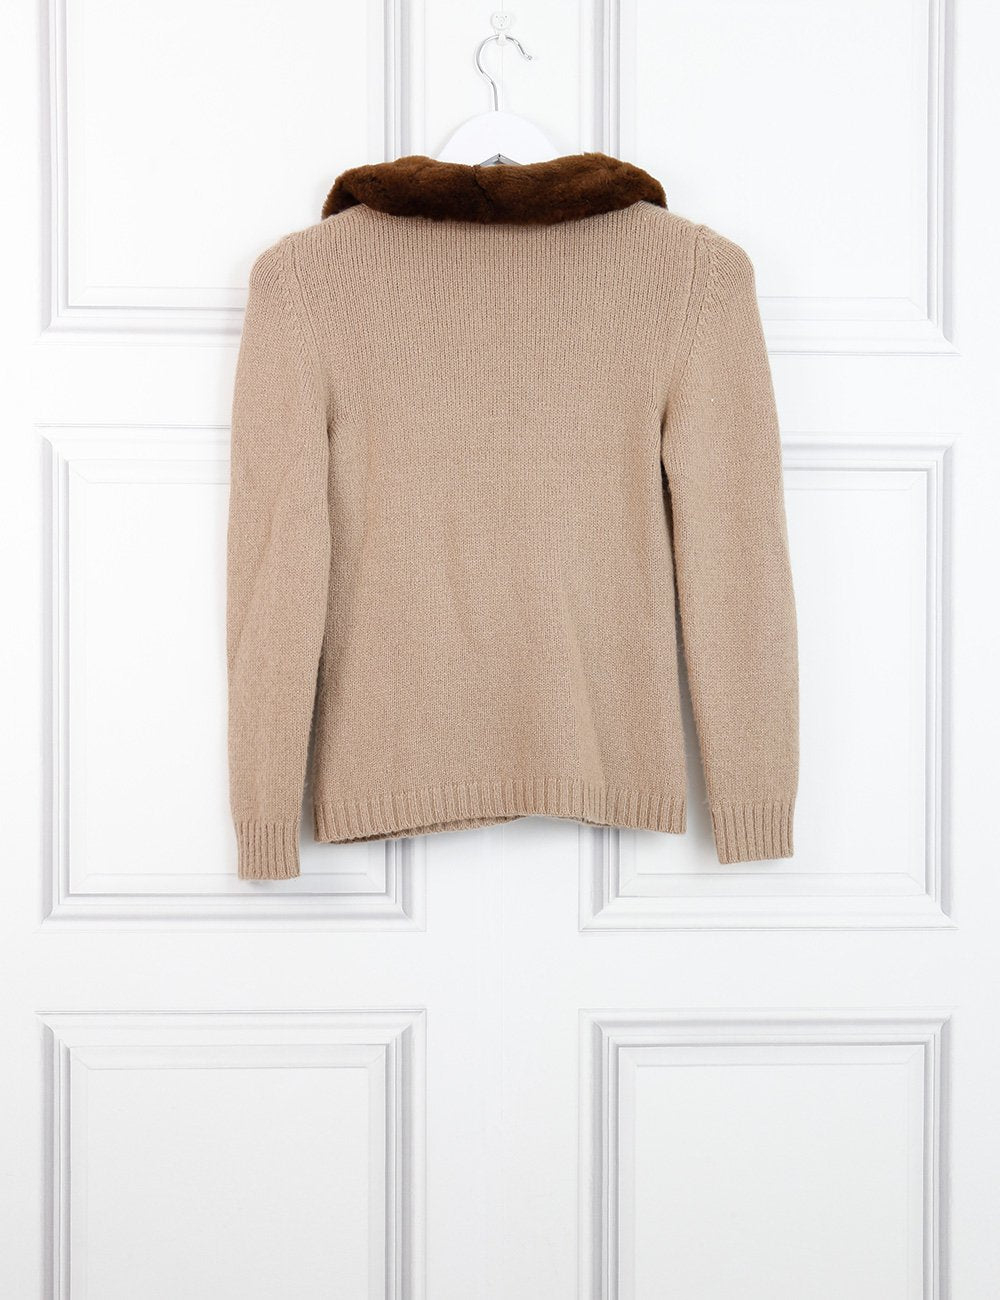 Blumarine beige cashmere cardigan with contrasting neckline 14 Uk- My Wardrobe Mistakes